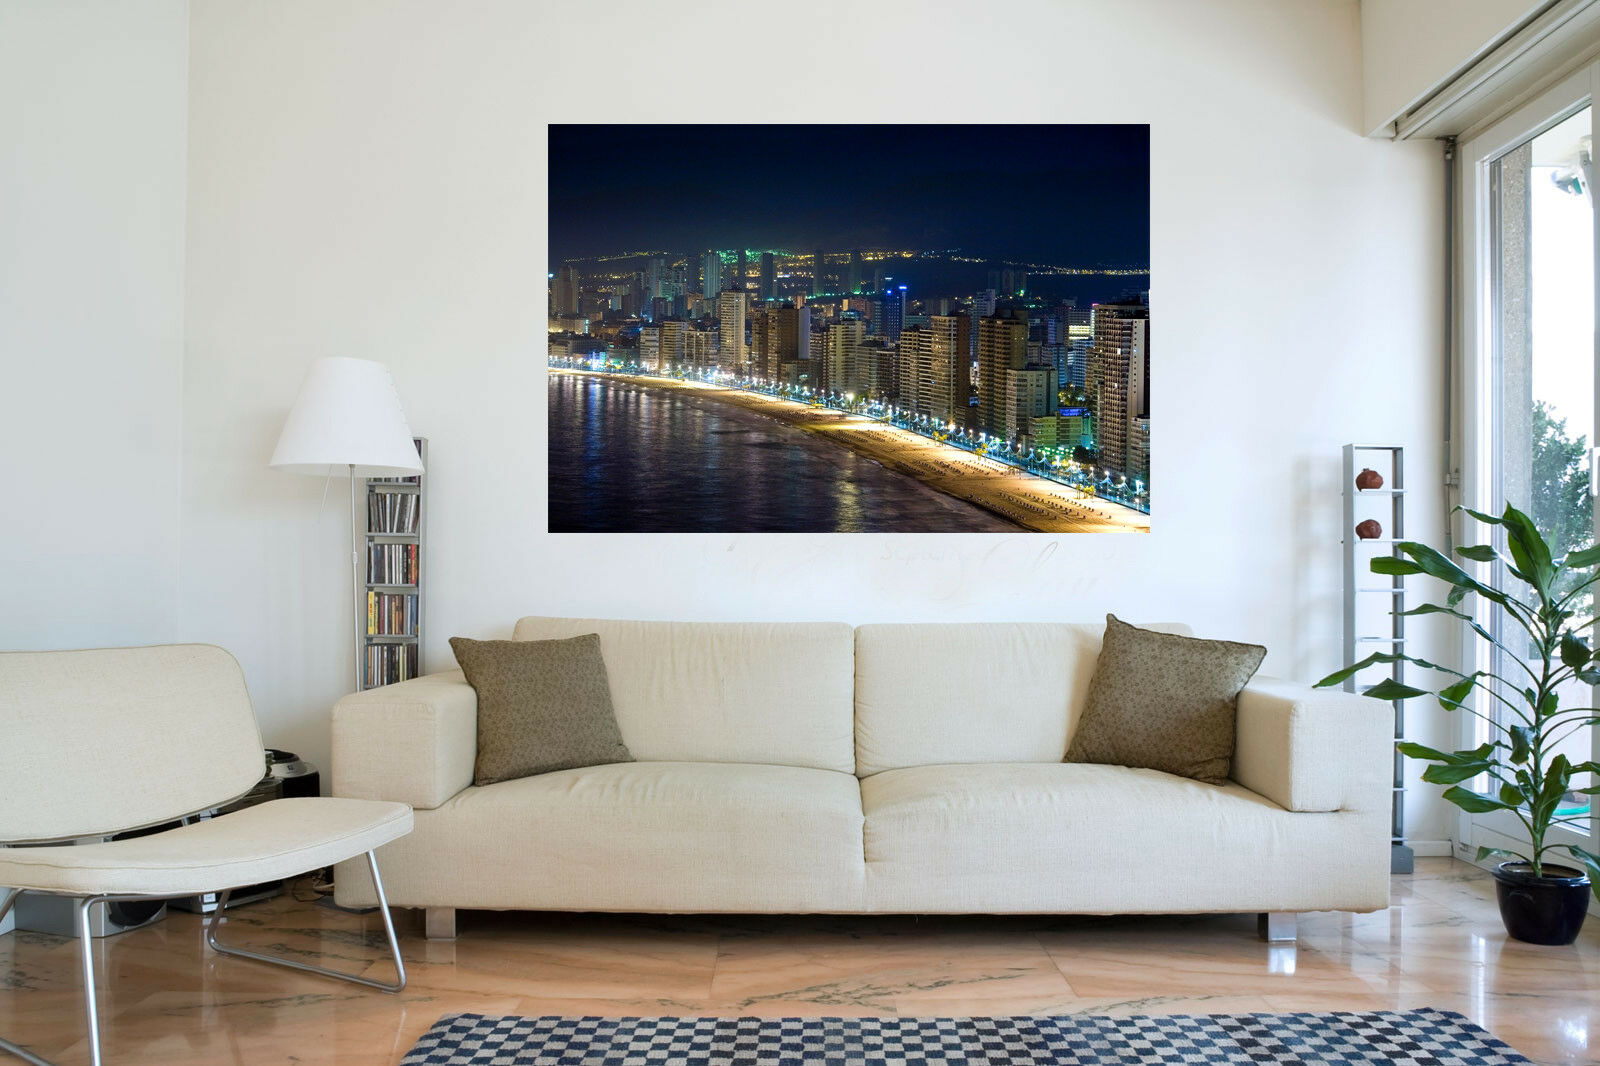 Benidom At Night Landscape Cotton Canvas Canvas Canvas Wall Art Picture Print- ALL GrößeS 23bc9f